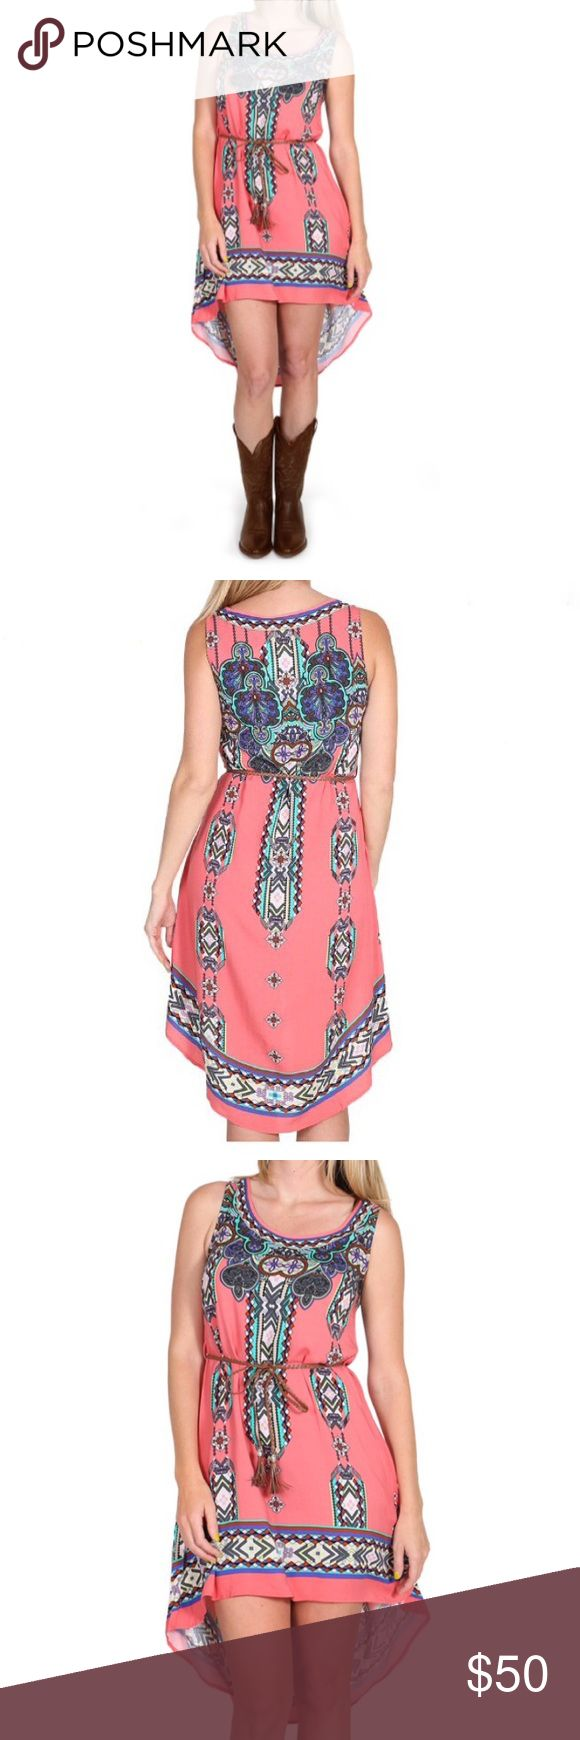 Shyanne Women's Aztec Print High-Low Dress XL Get that fun and flirty country girl look with this Shyanne women's Aztec Print high-low dress. This feminine dress is so versatile you can pair it with your best heels 👠 for a fancy date night or with your favorite cowboy boots for a concert or music festival. Featuring a high-low hemline, scoop-neck, waist belt and sleeveless cut this dress is perfect for warmer weather. Only worn one time. Perfect condition. 100% Rayon Shyanne Dresses High…